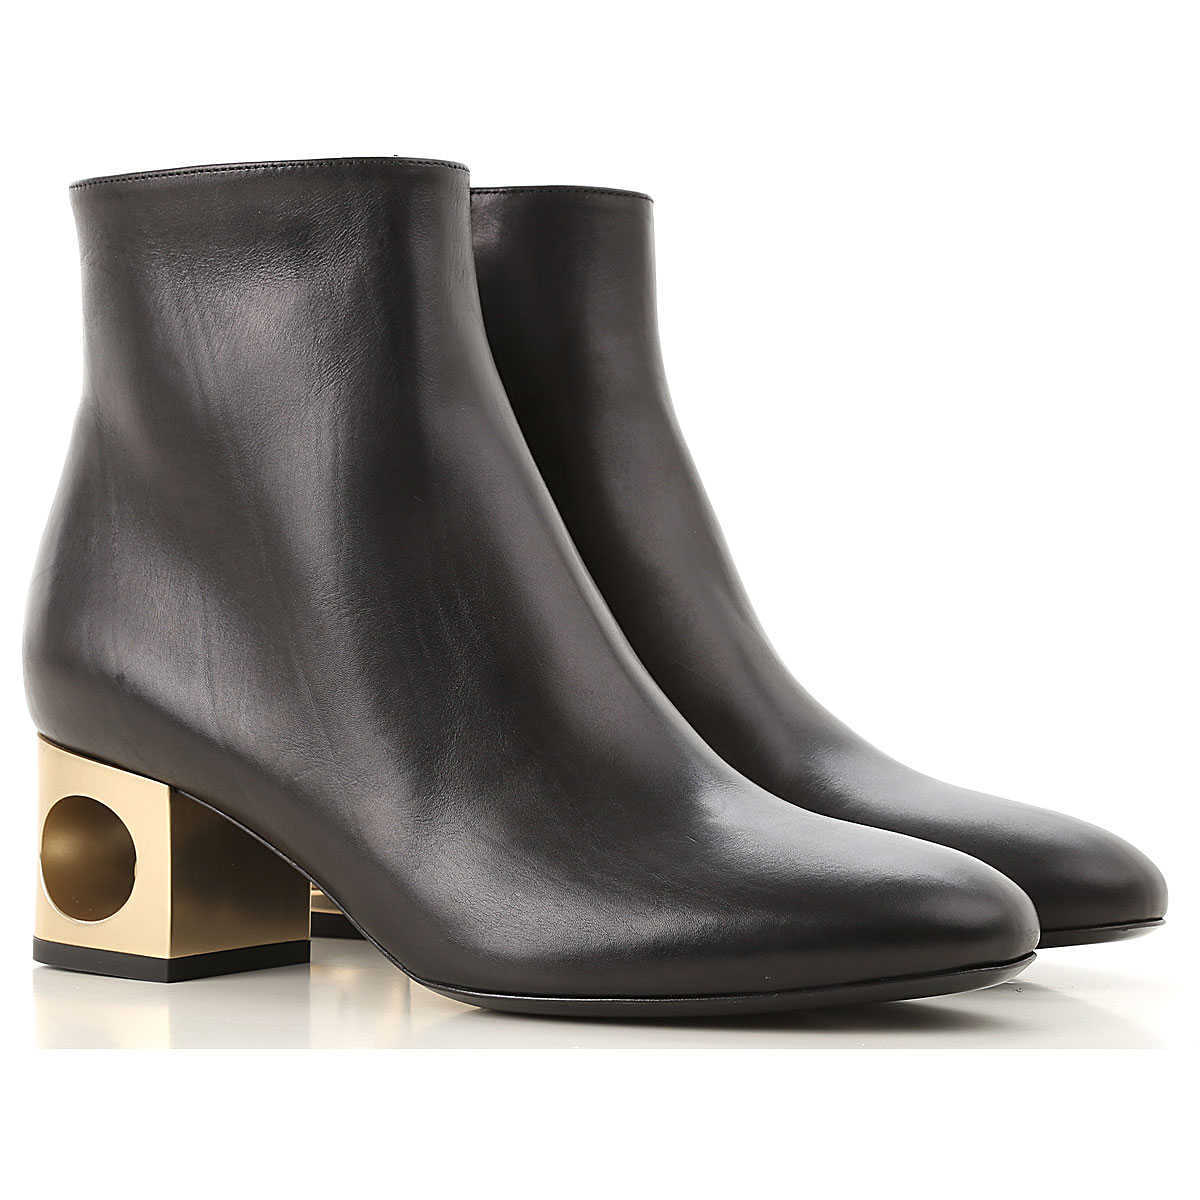 Coliac Boots for Women Booties On Sale in Outlet - GOOFASH